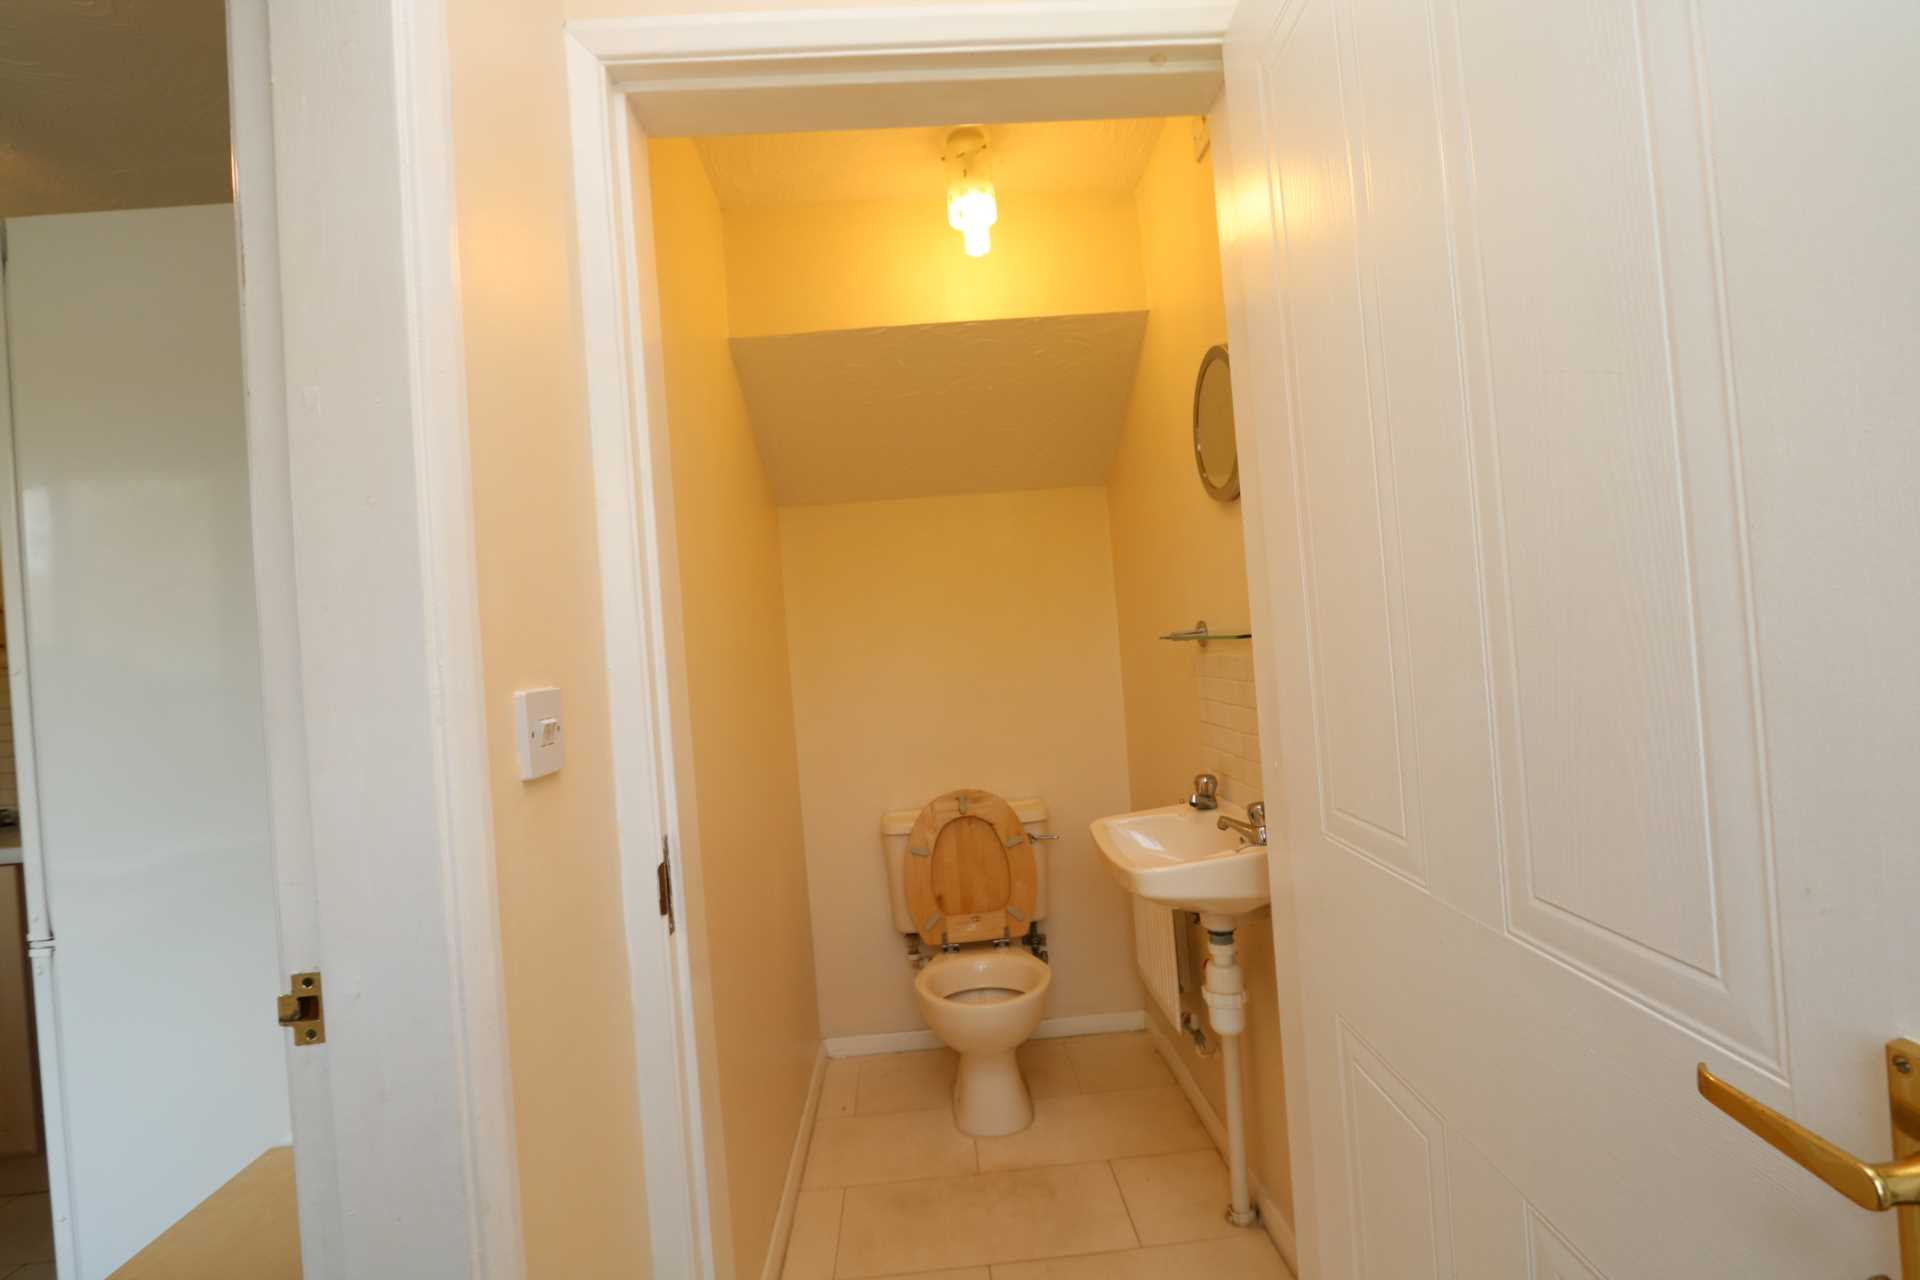 Perchfoot Close - 3 bedroom student home fully furnished, WIFI & bills included - NO FEES, Image 5